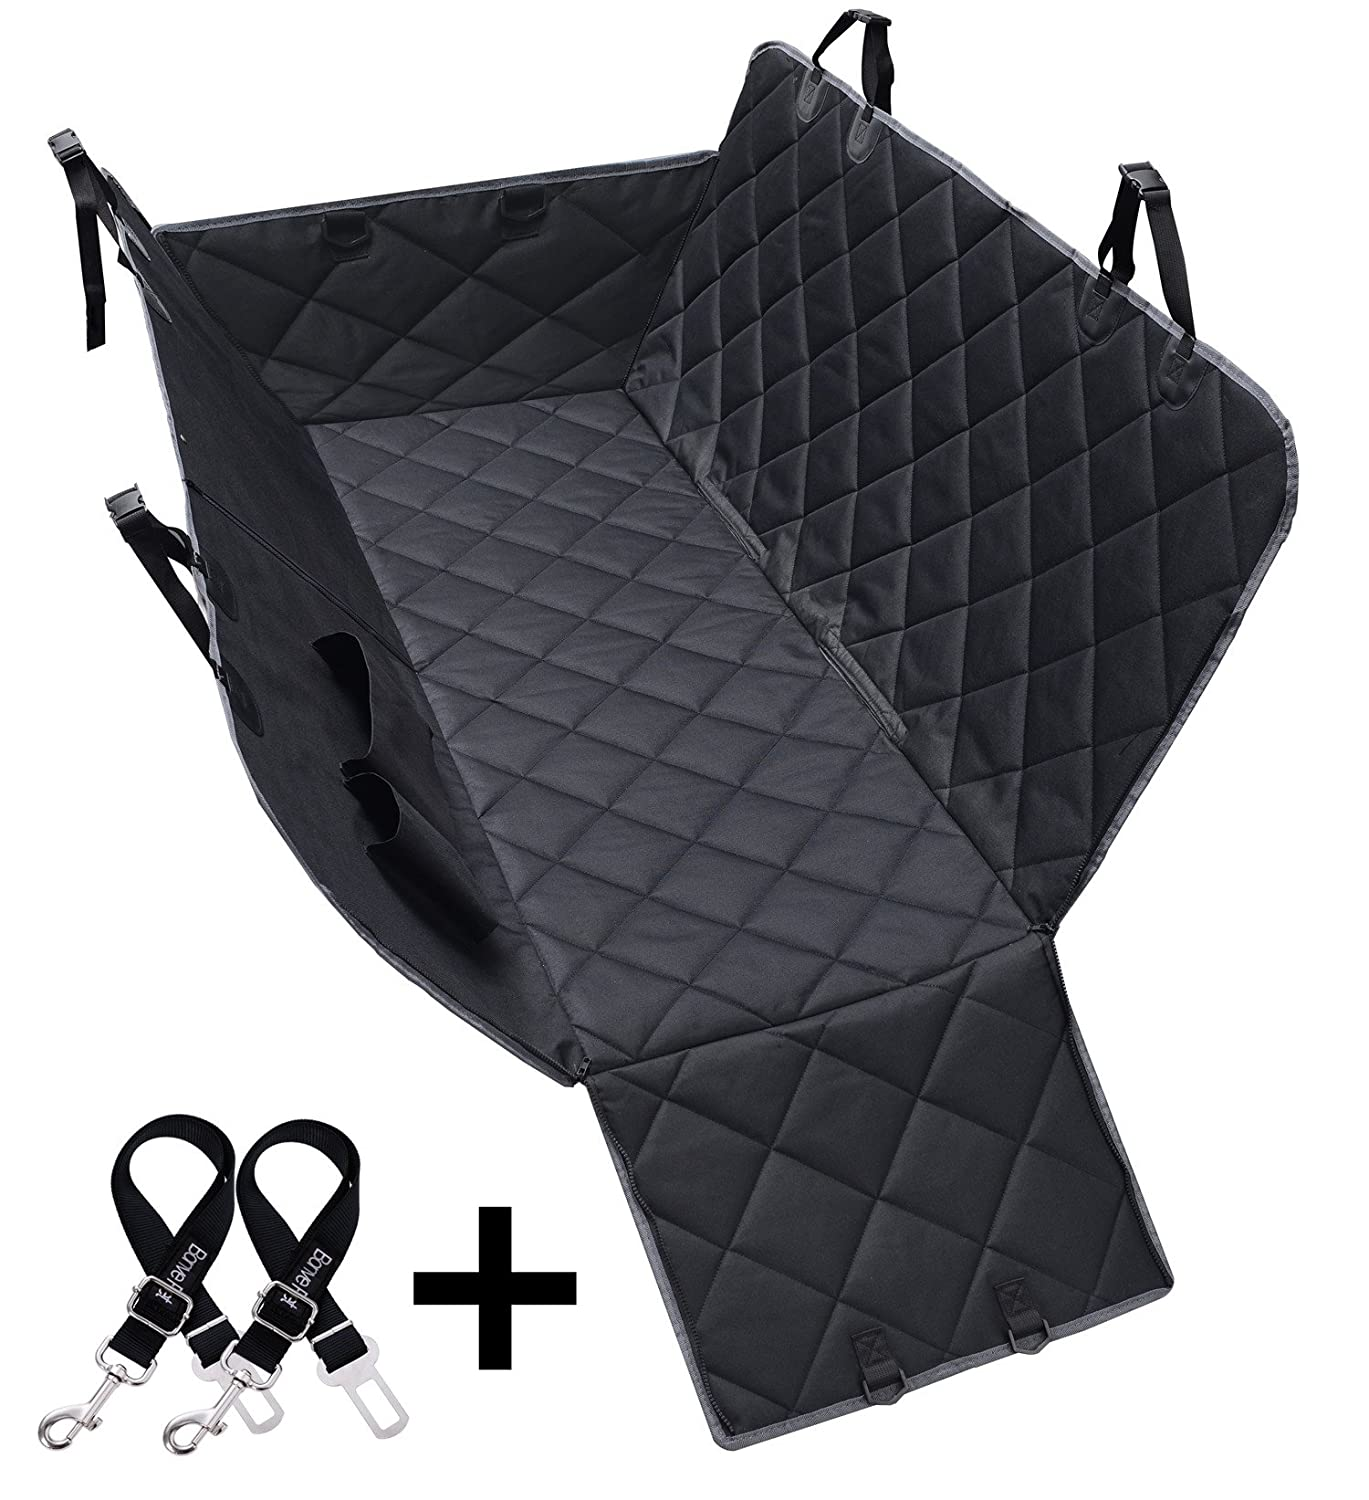 The Best Pet Car Seat Covers In 2020: Reviews & Buying Guide 7